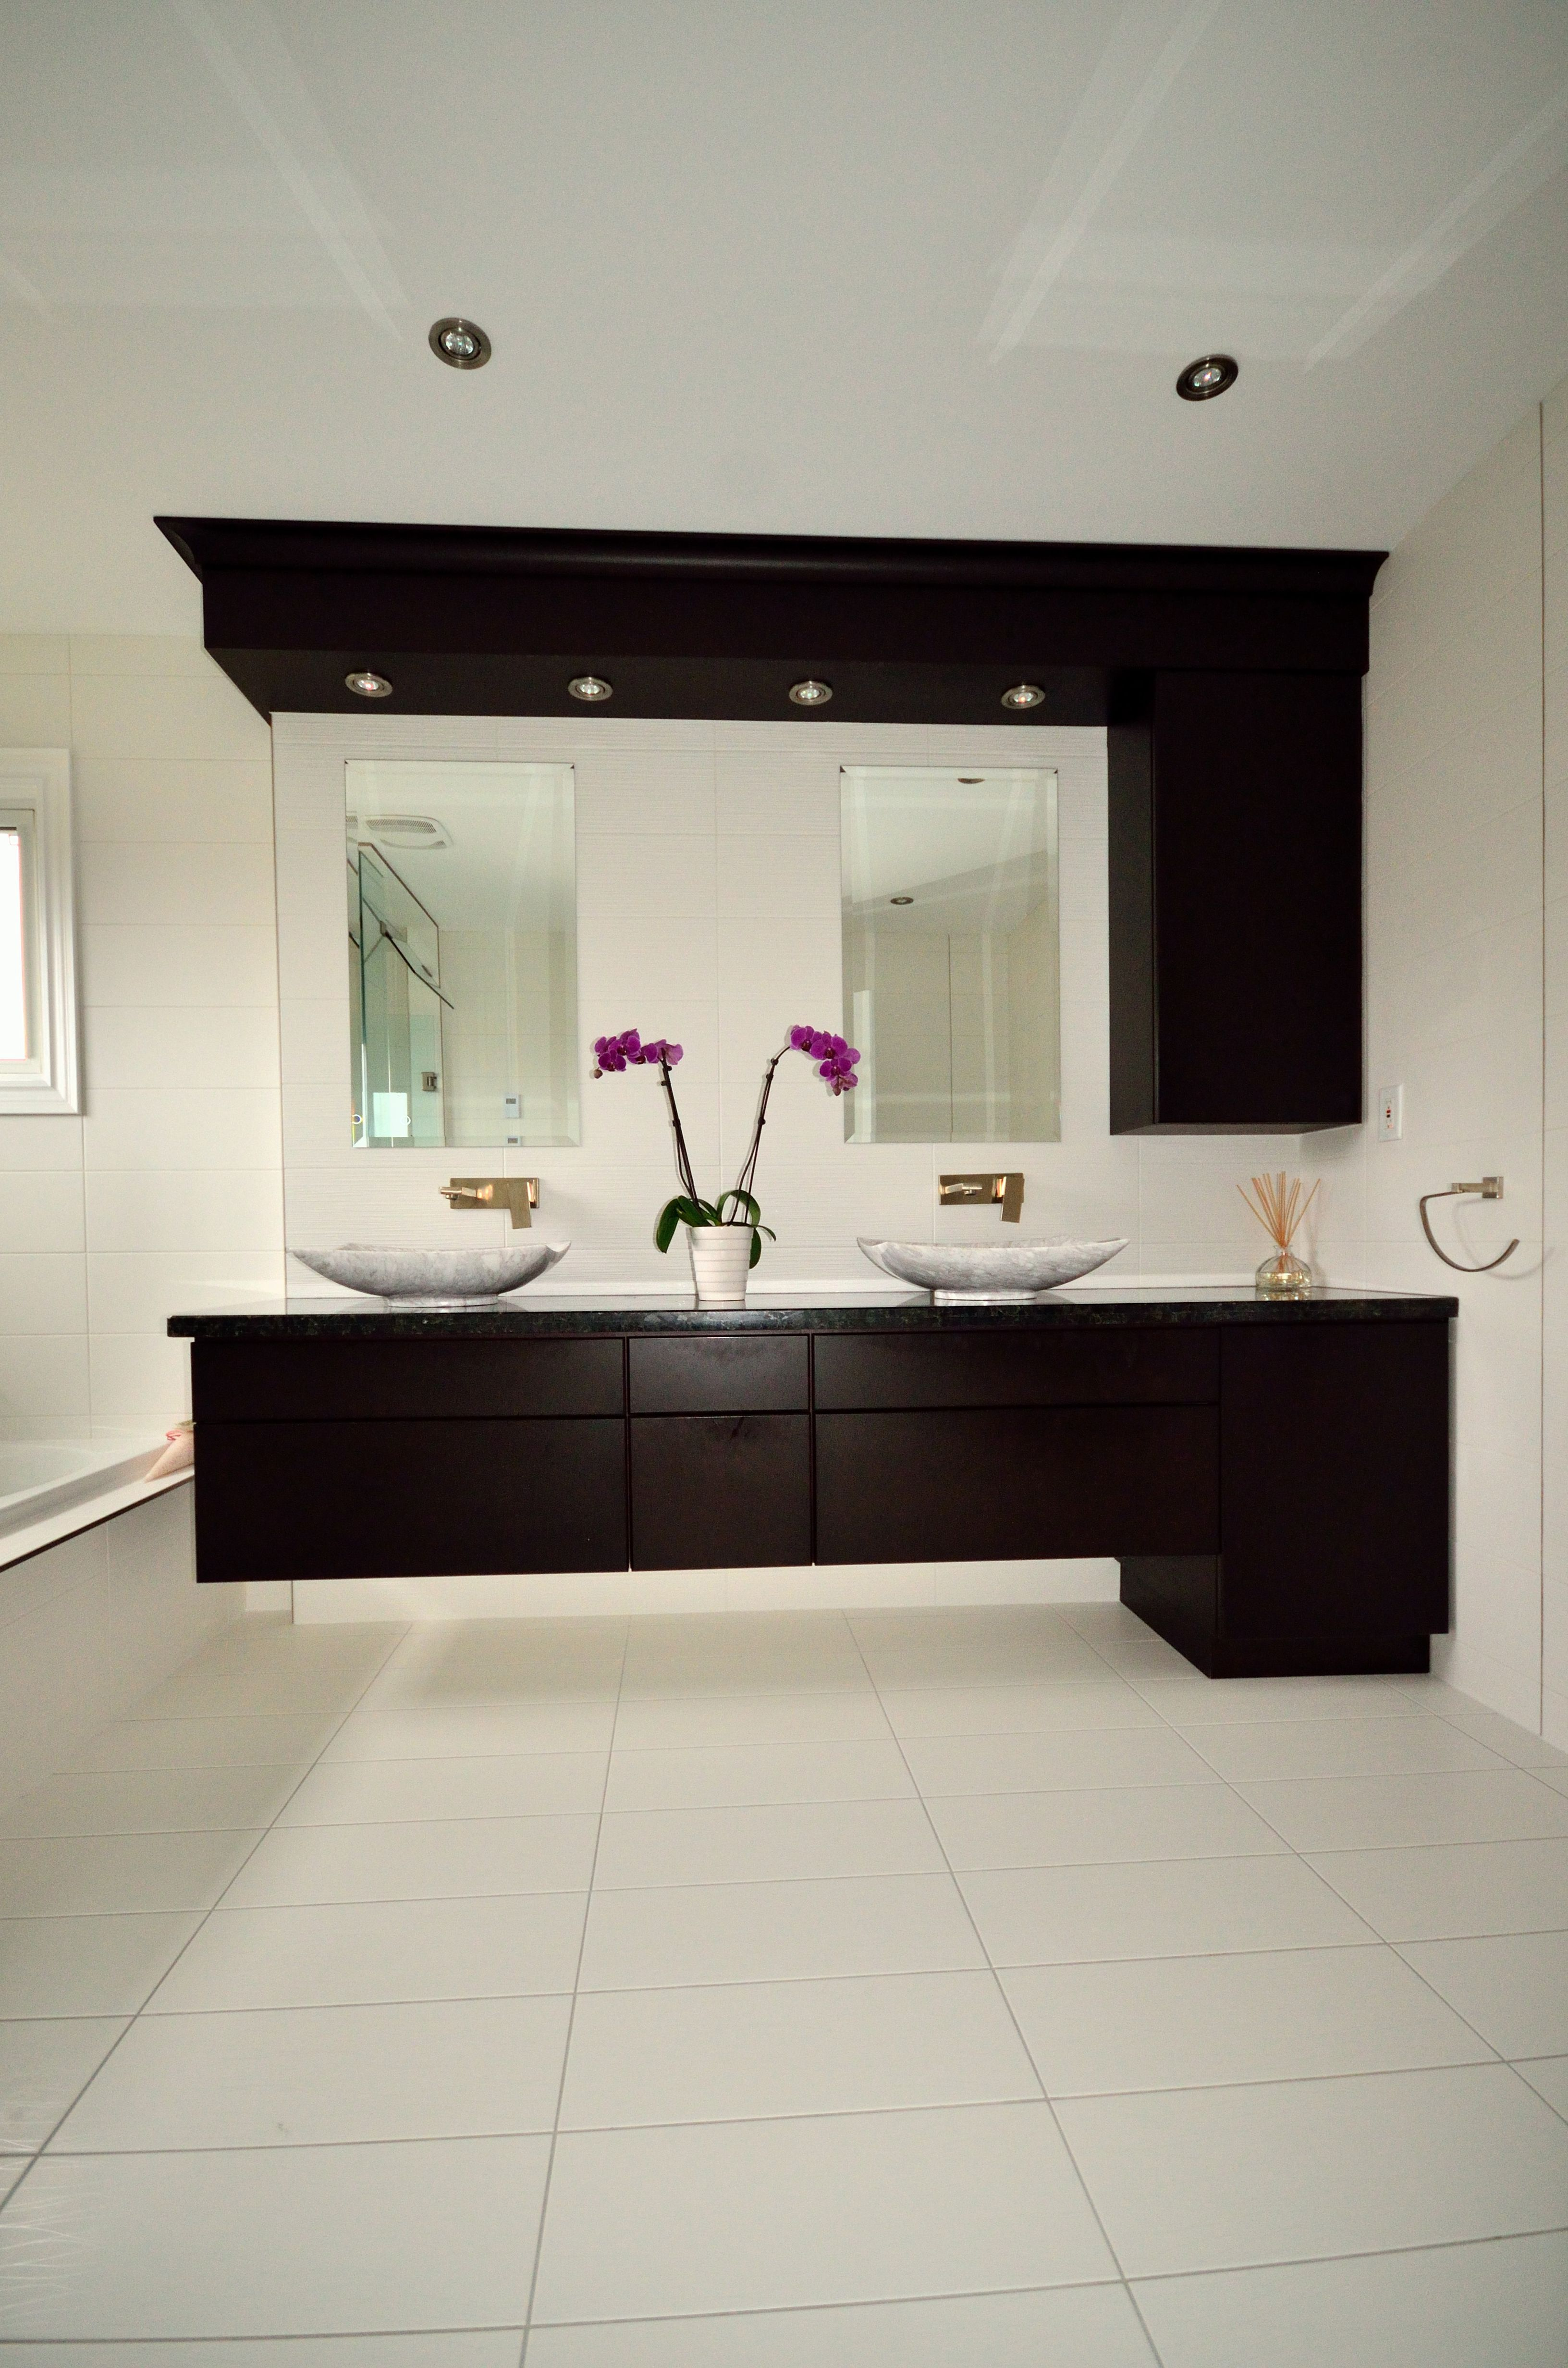 small ideas vanities ikea custom full tops for without of size home vanity best configurator bathroom top cabinets bathrooms depot